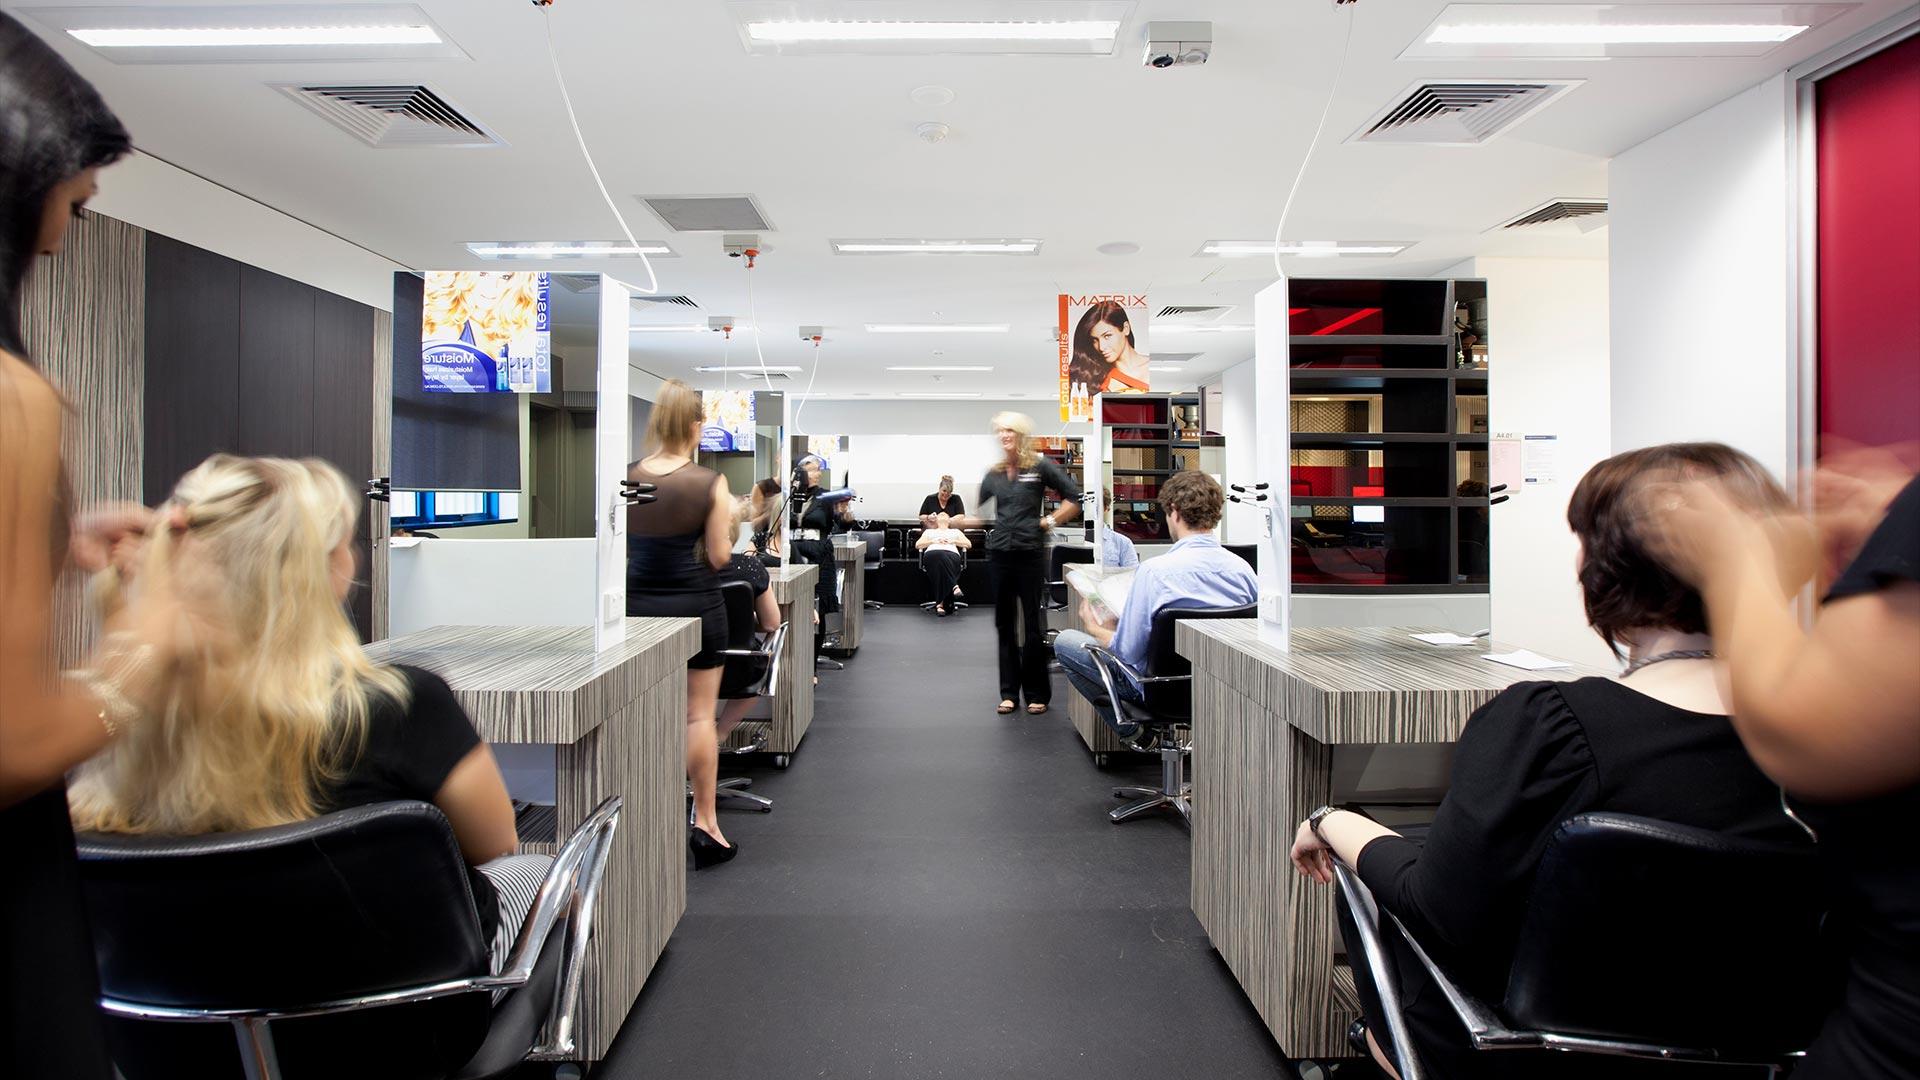 south-bank-facilities-beauty-and-hairdressing-hairdressing-salons-01.jpg